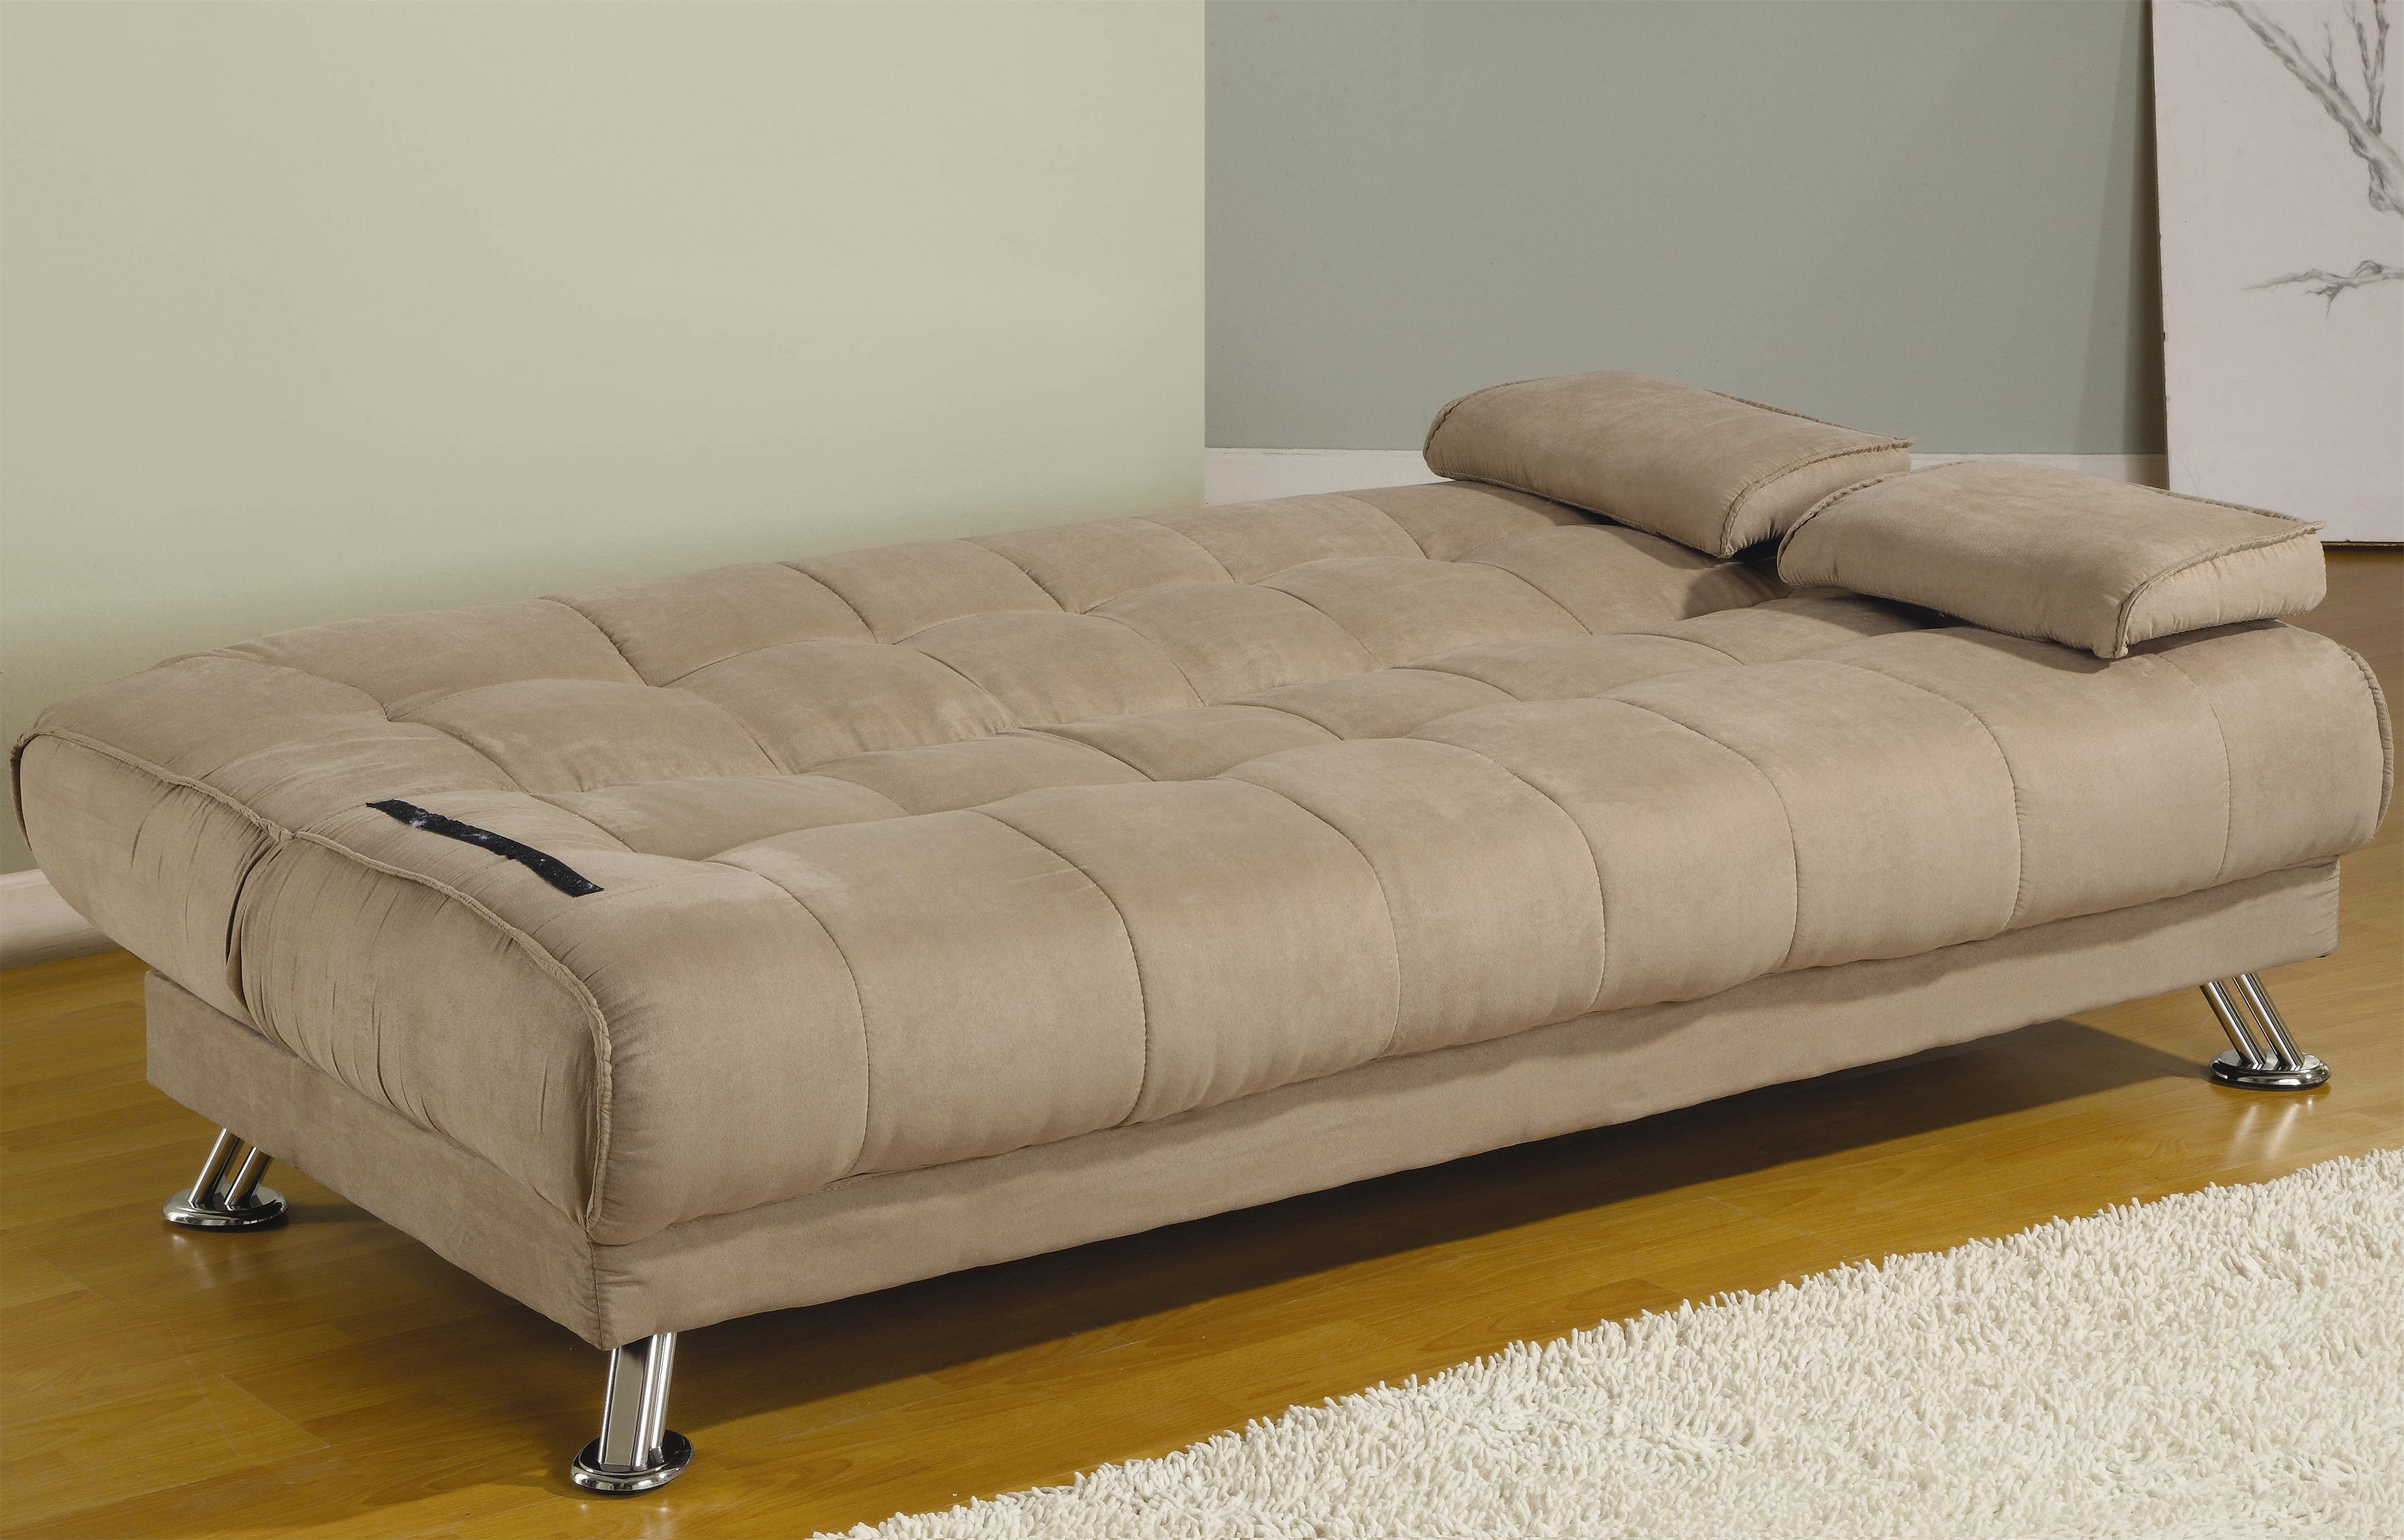 Most Recent City Sofa Beds In Fabric Convertible Sofa Bed With Removable Armrests (View 12 of 20)